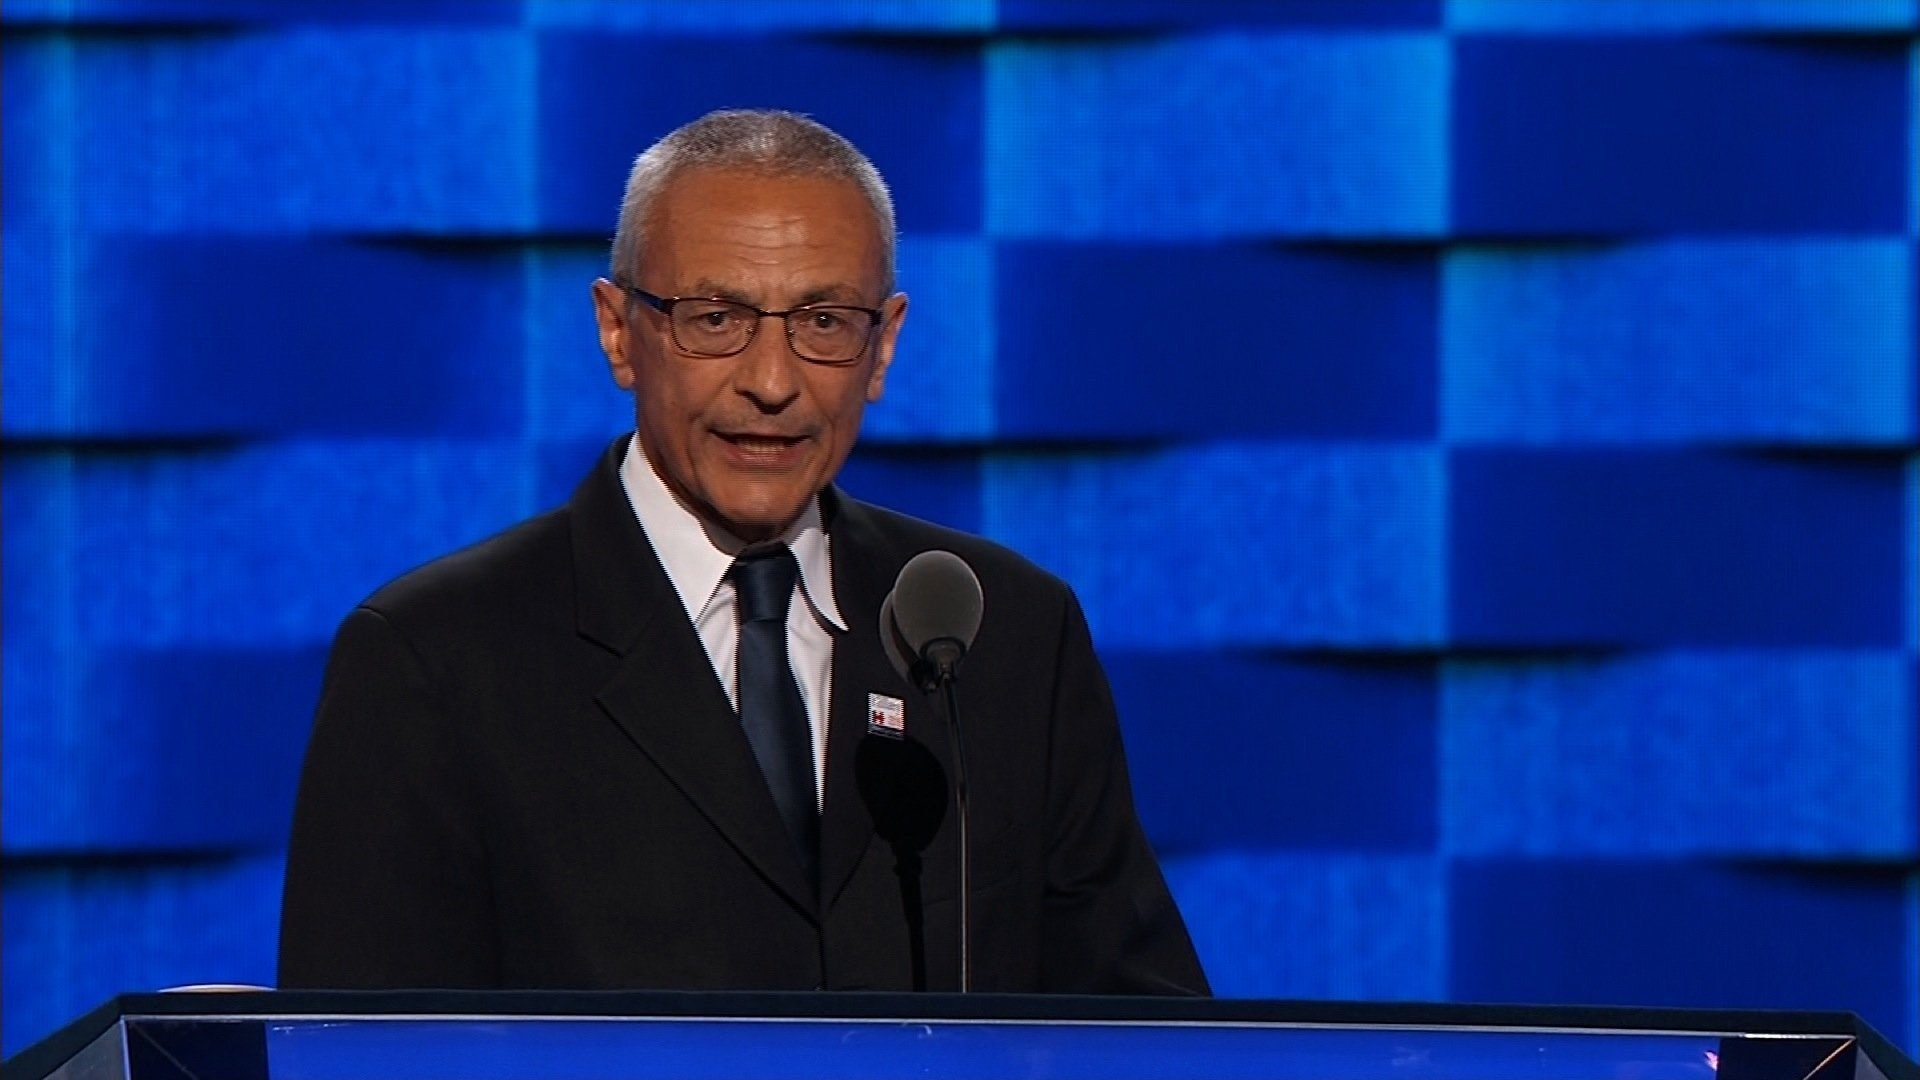 A senior adviser at the Department of Housing and Urban Development spread a false conspiracy theory that claimed Hillary Clinton's 2016 presidential campaign chairman John Podesta took part in a Satanic ritual, a CNN KFile review of his tweets show.